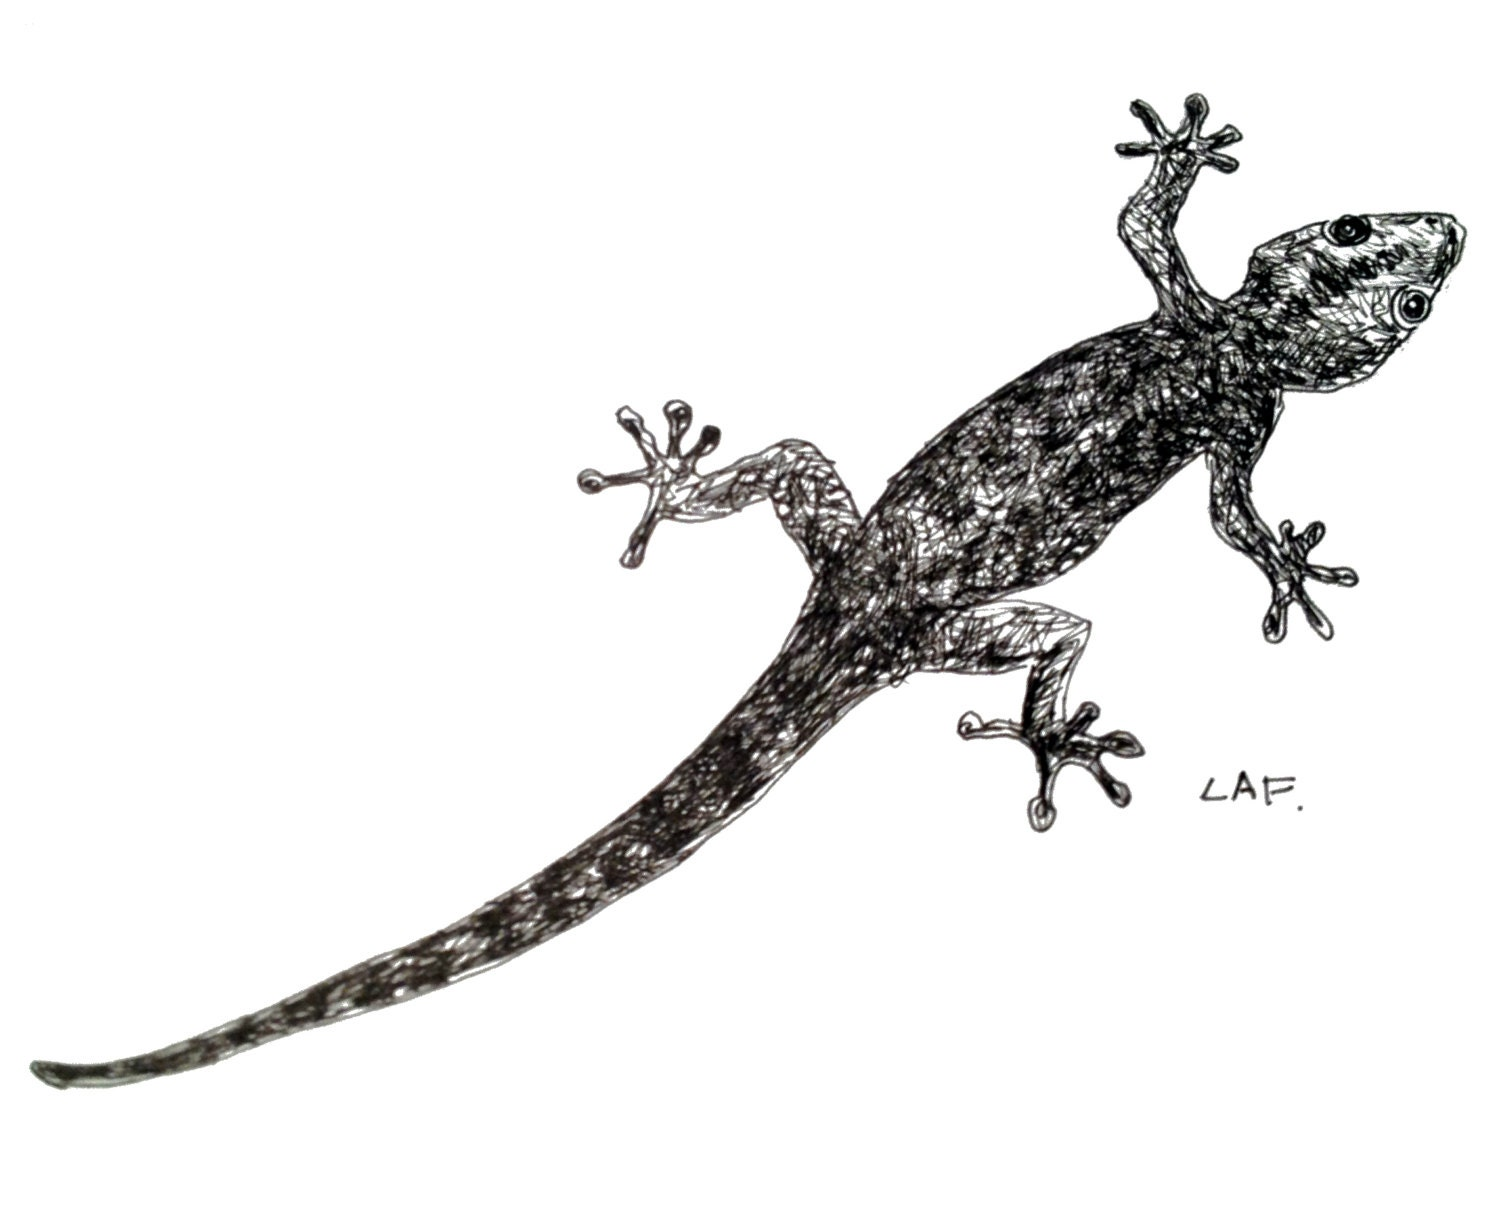 Gecko art gecko printsOriginal Pen and Ink Drawing Limited for House Lizard Drawing  589ifm